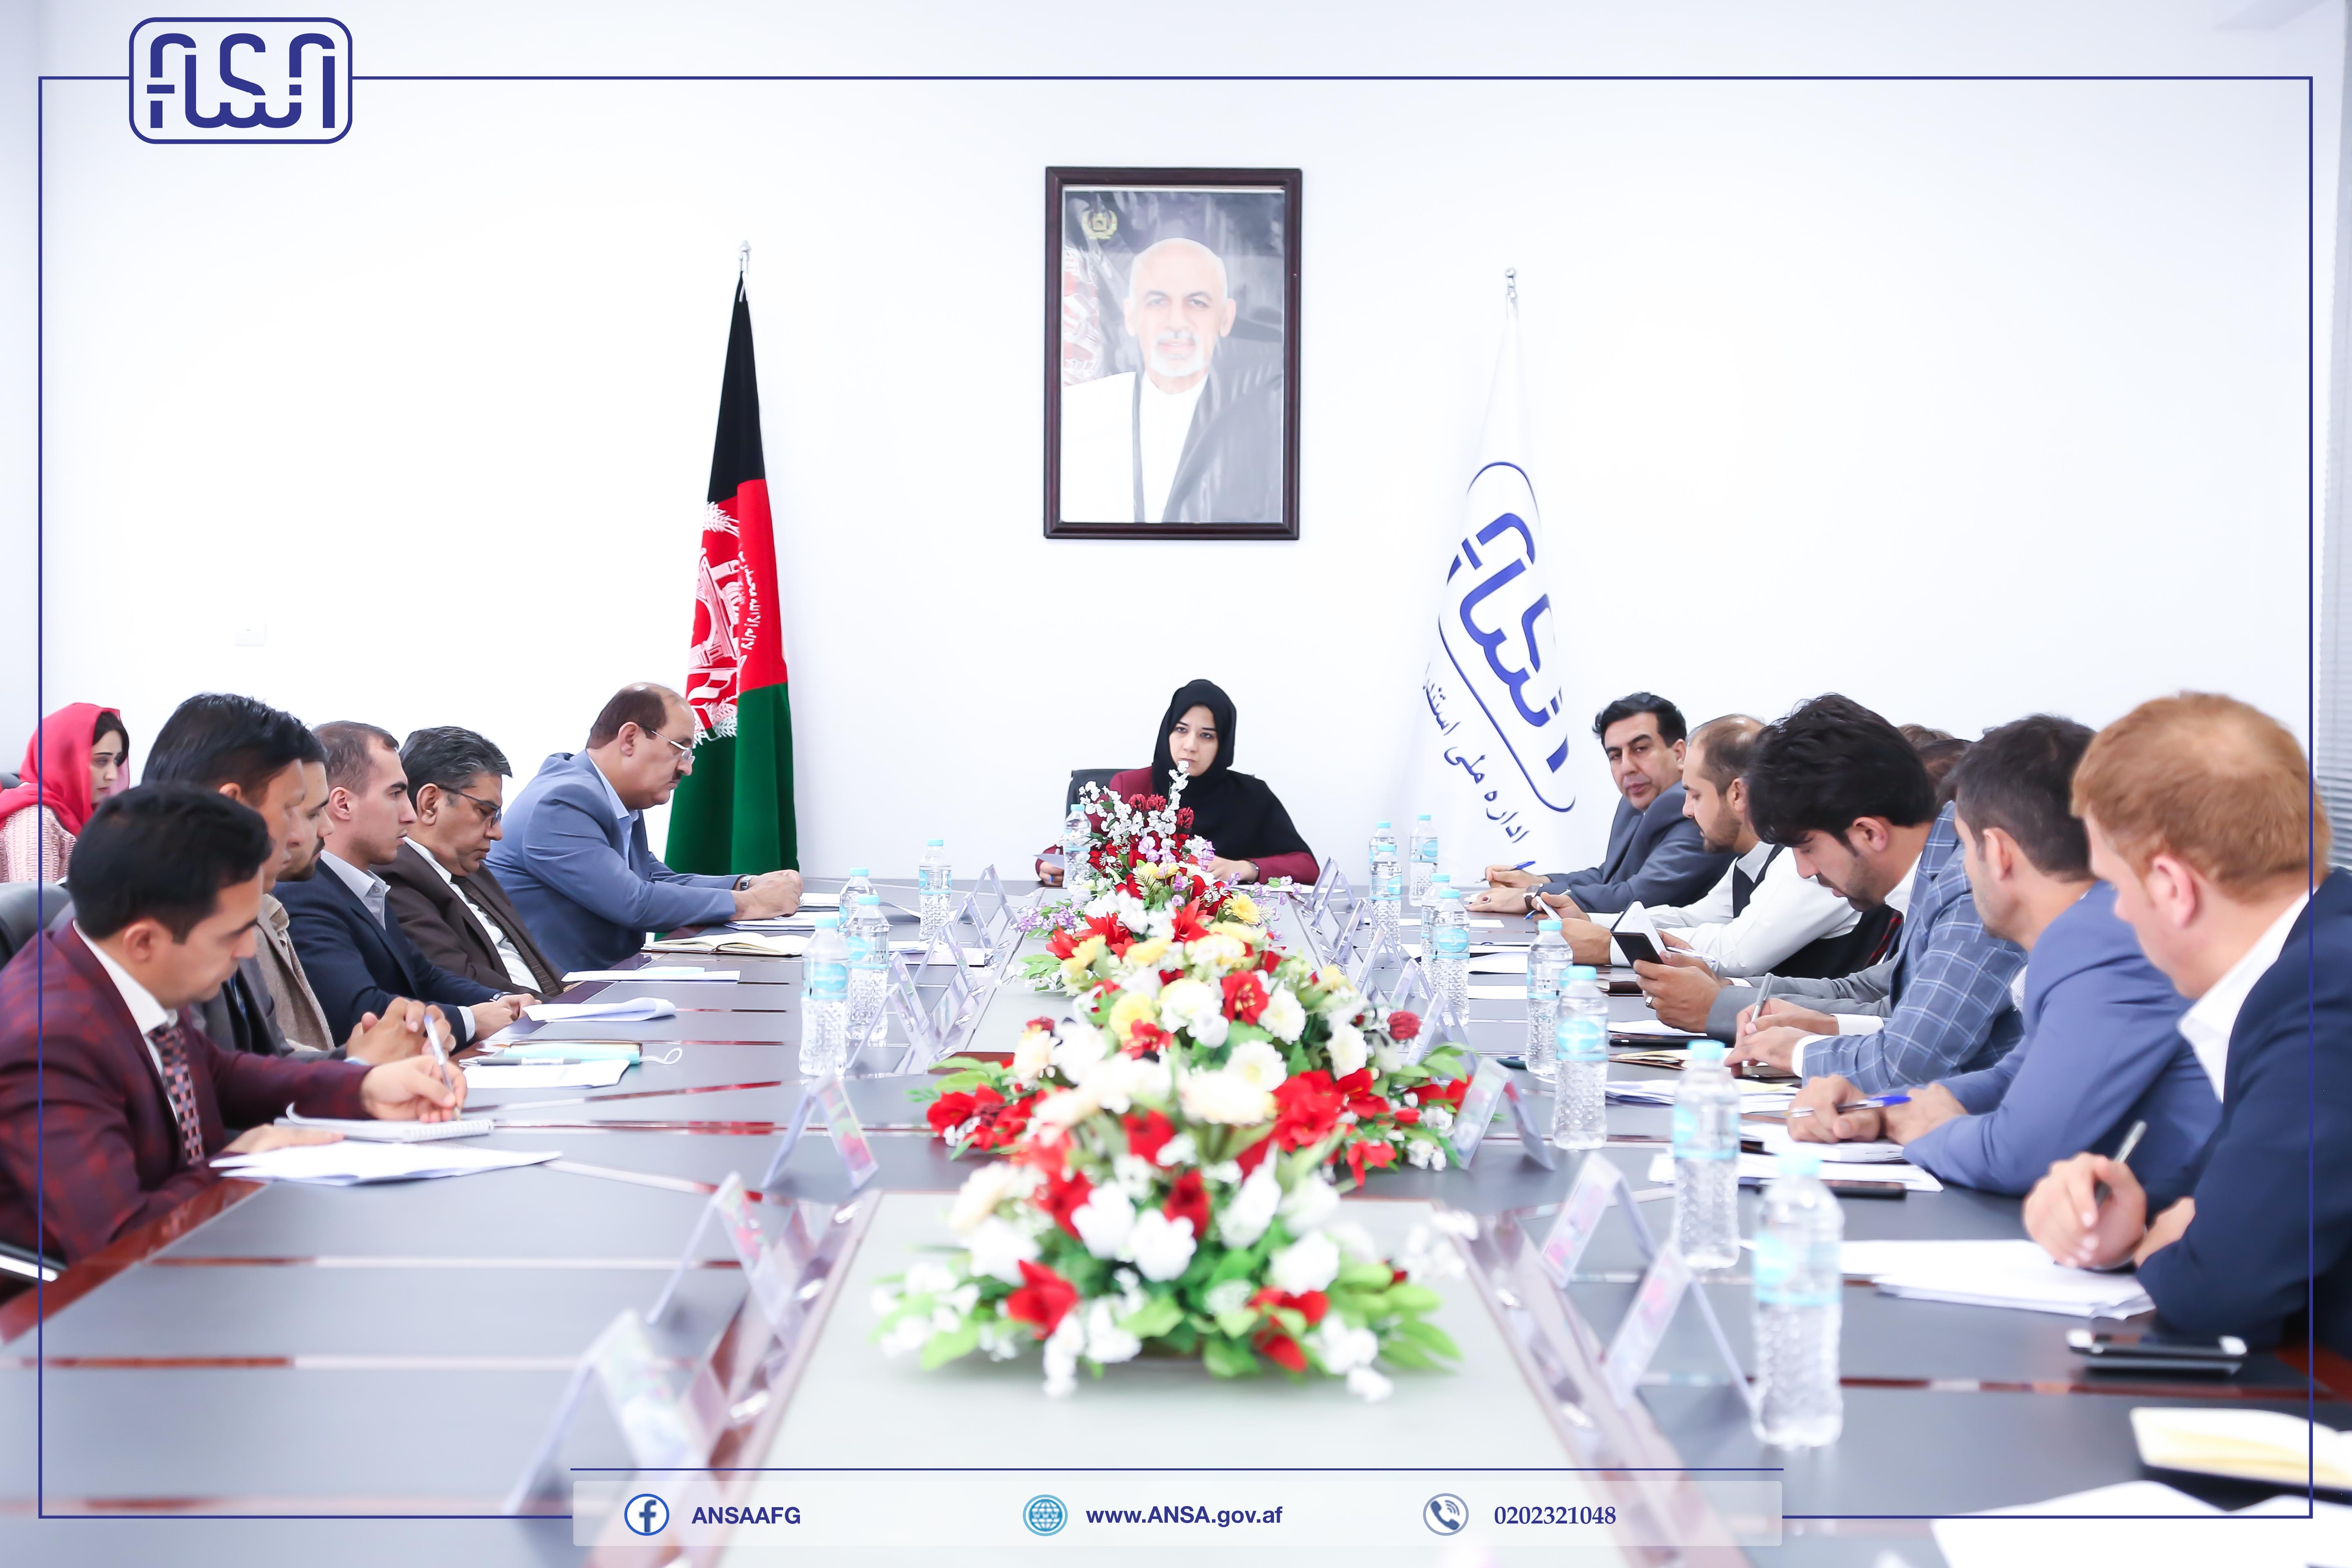 A meeting of the leadership board of the National Standards Authority was held.